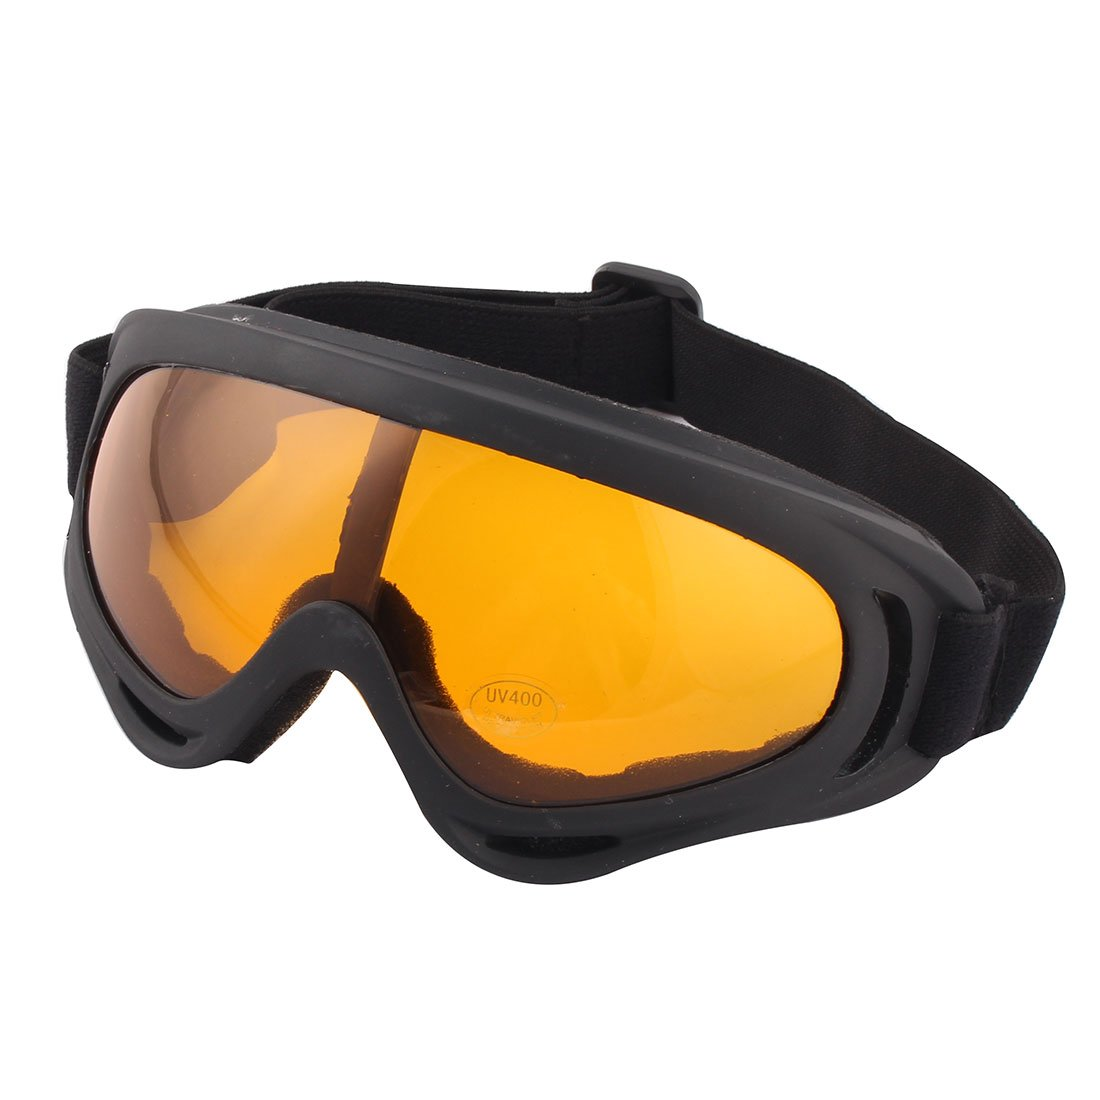 Top 10 Best Snowboard Goggles (2020 Reviews & Buying Guide) 9